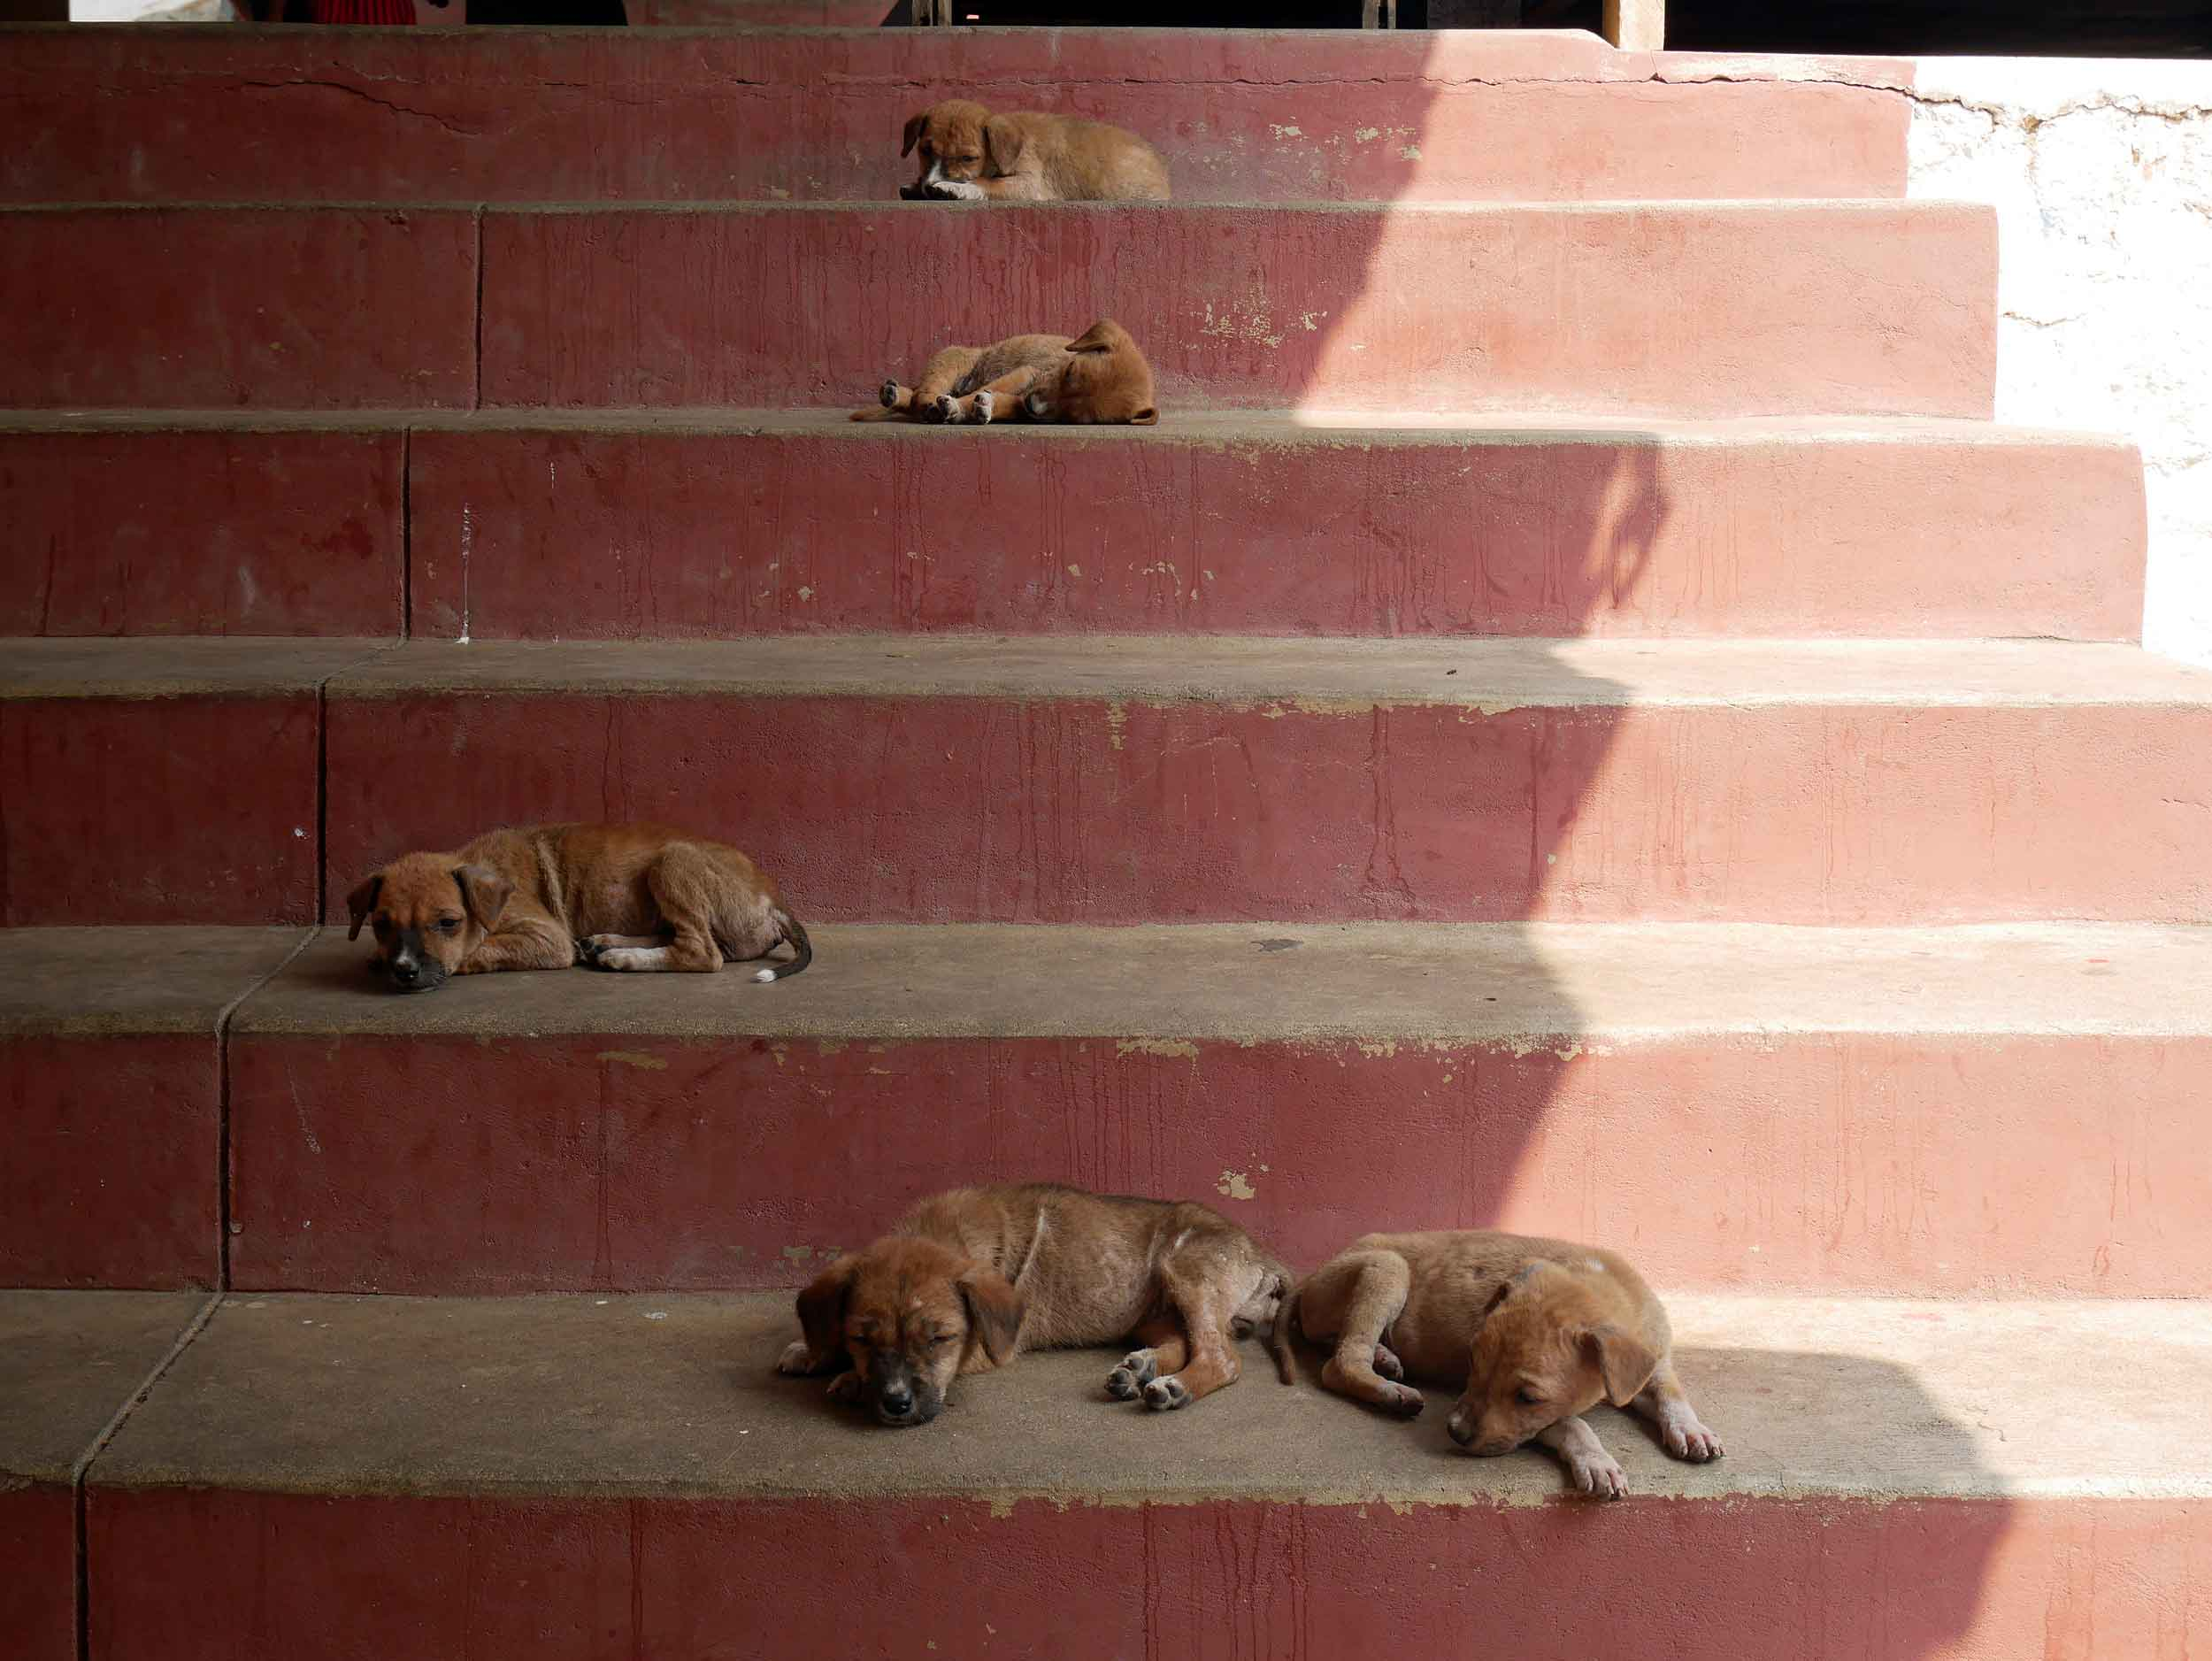 Many surprises and interesting moments lay in-store as you climb upwards, including these drowsy puppies (Feb 18).